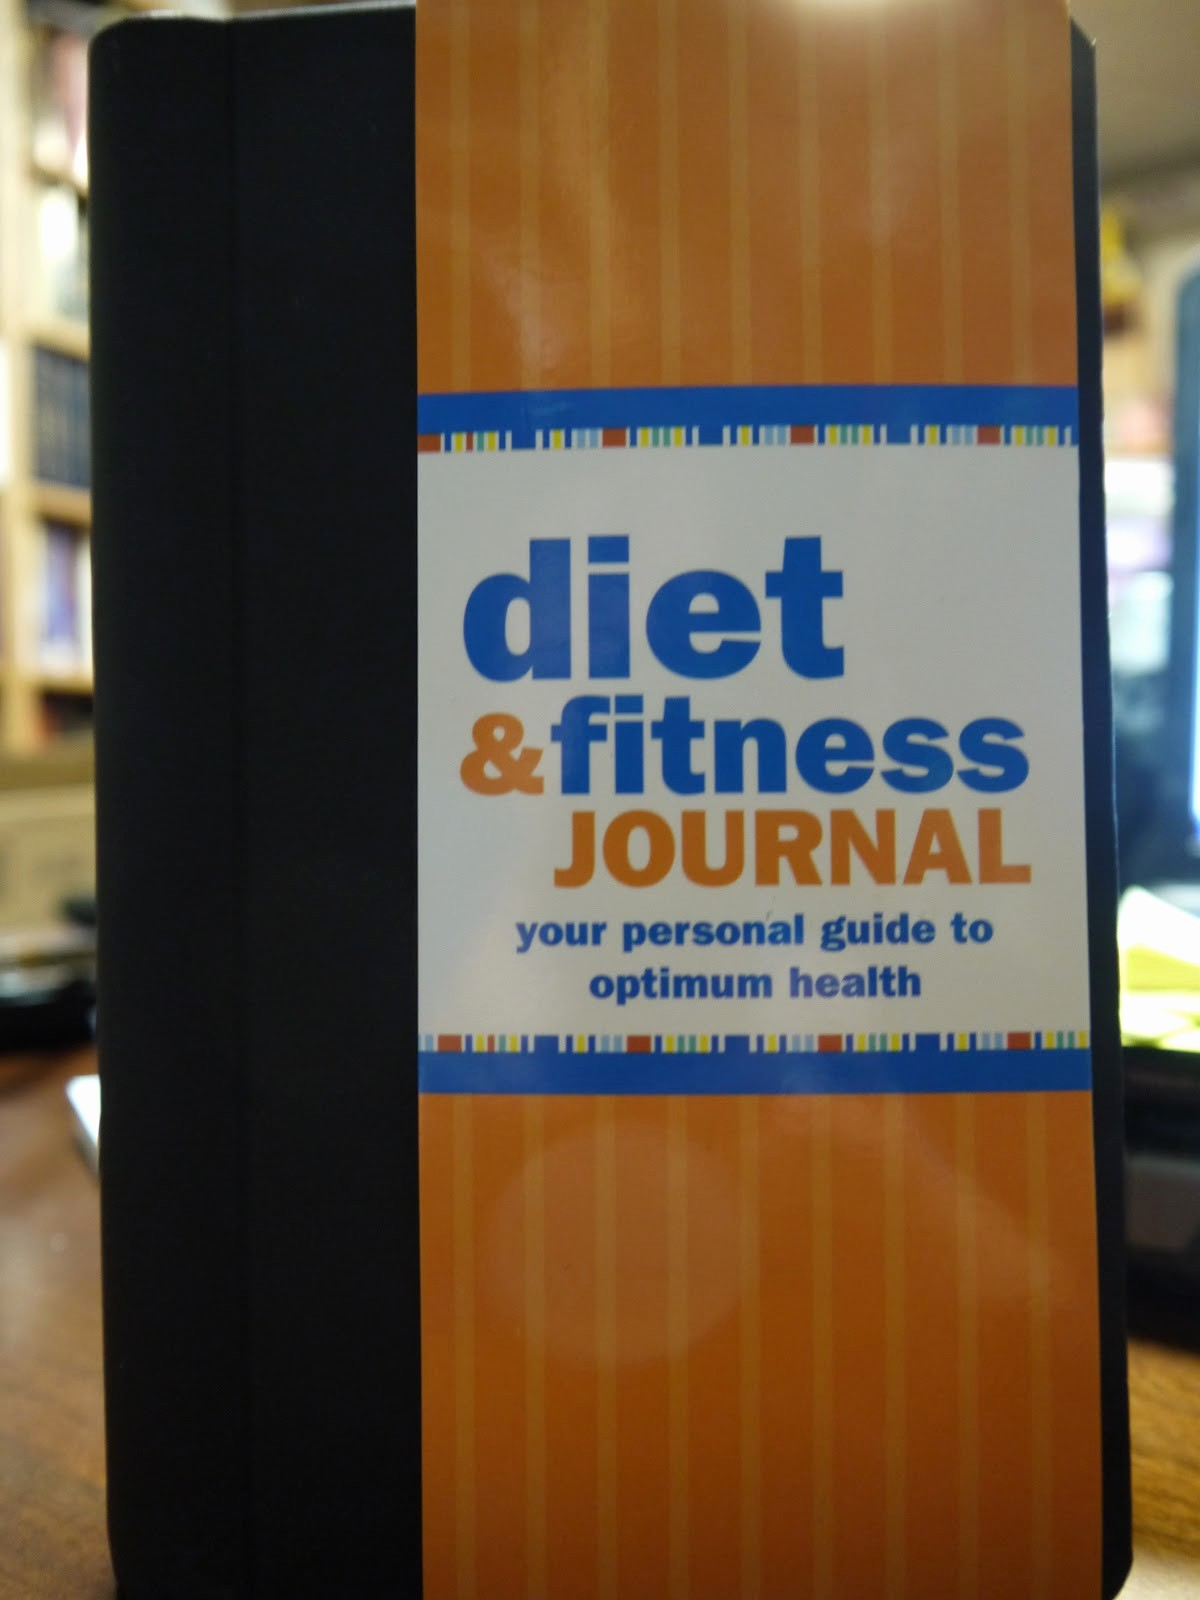 Online Food and Exercise Journal Best Of at the Fence Diet and Fitness Journal Peter Pauper Press